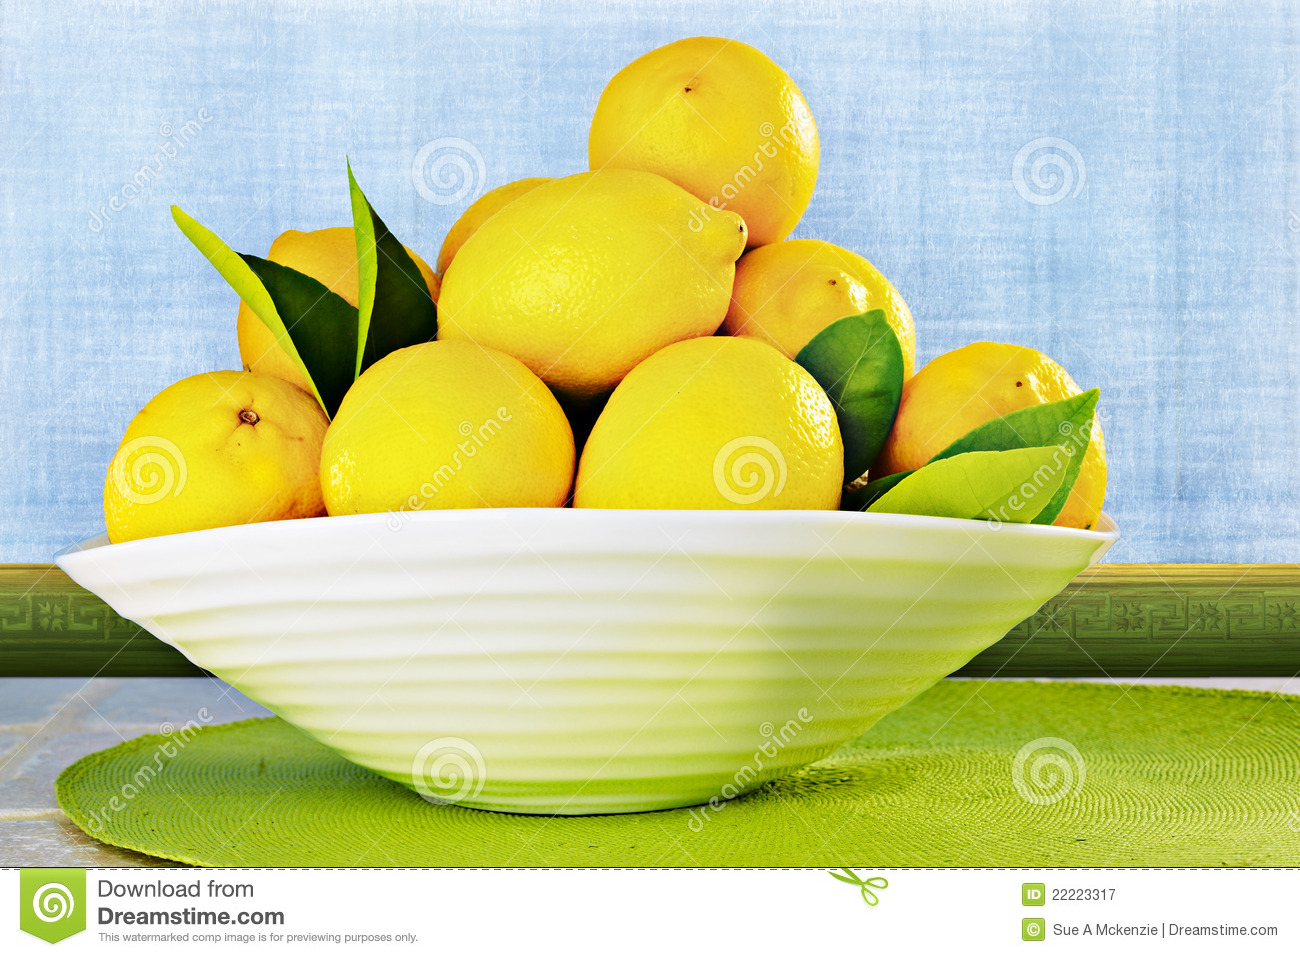 Eureka Lemons In A White China Bowl Grunge Wall Royalty